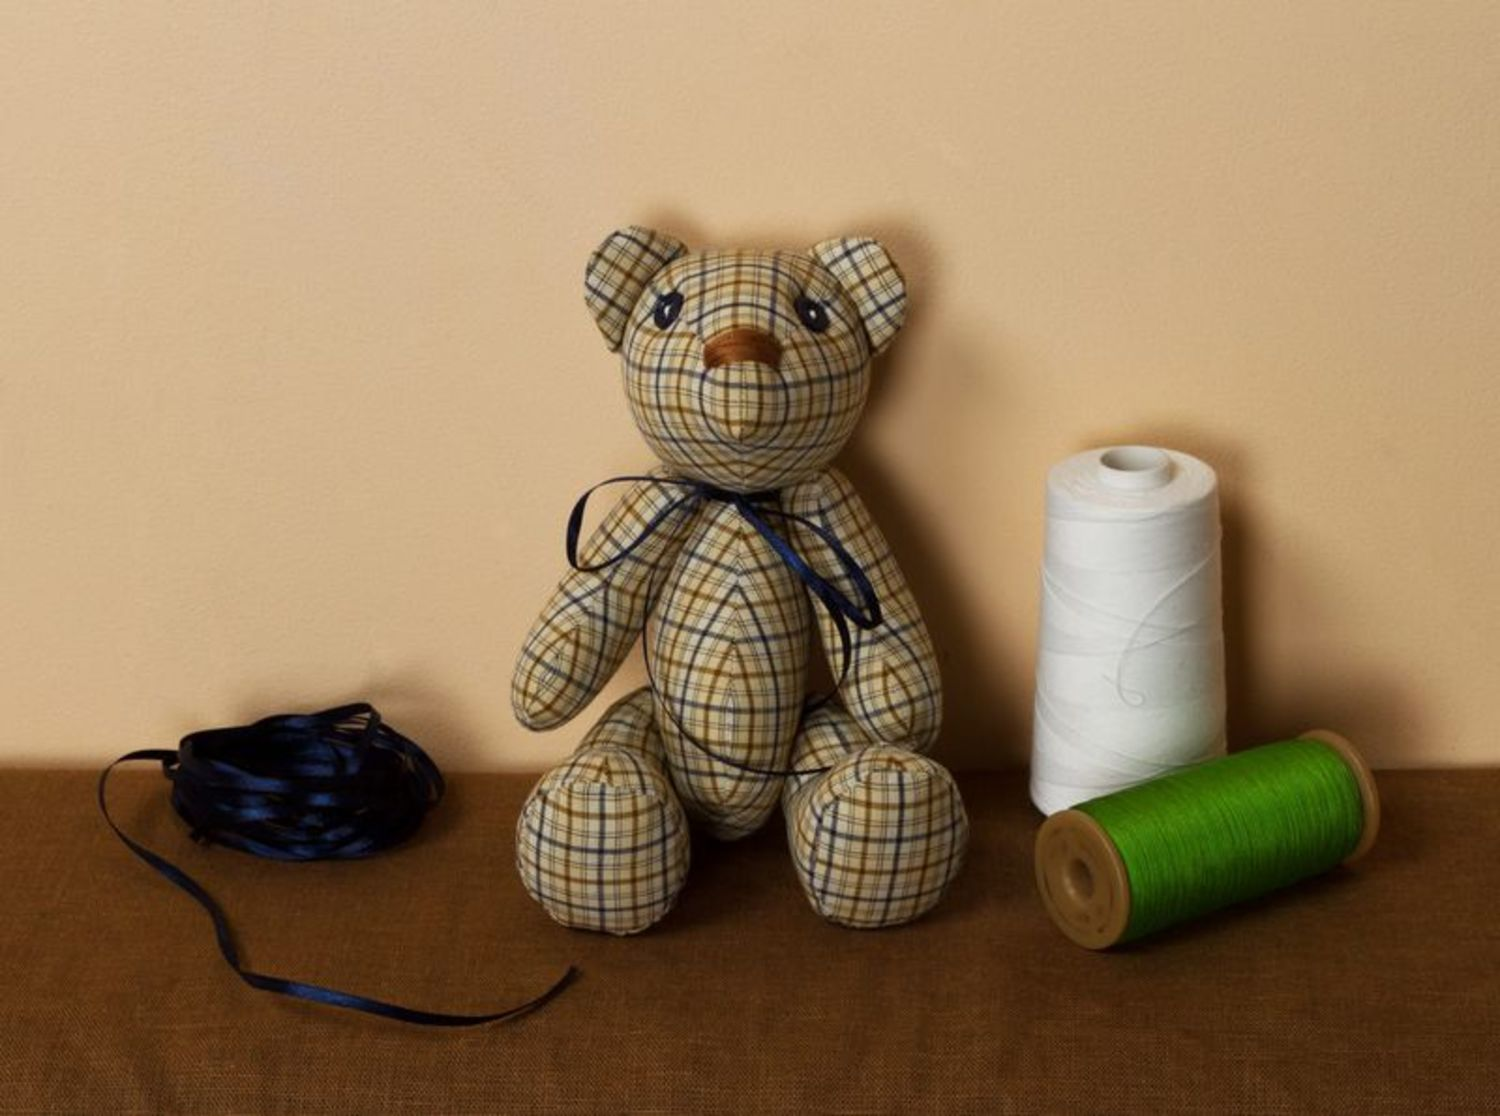 teddy bears Handmade soft toy stuffed animals classic toys kids toys for decorative use only - MADEheart.com